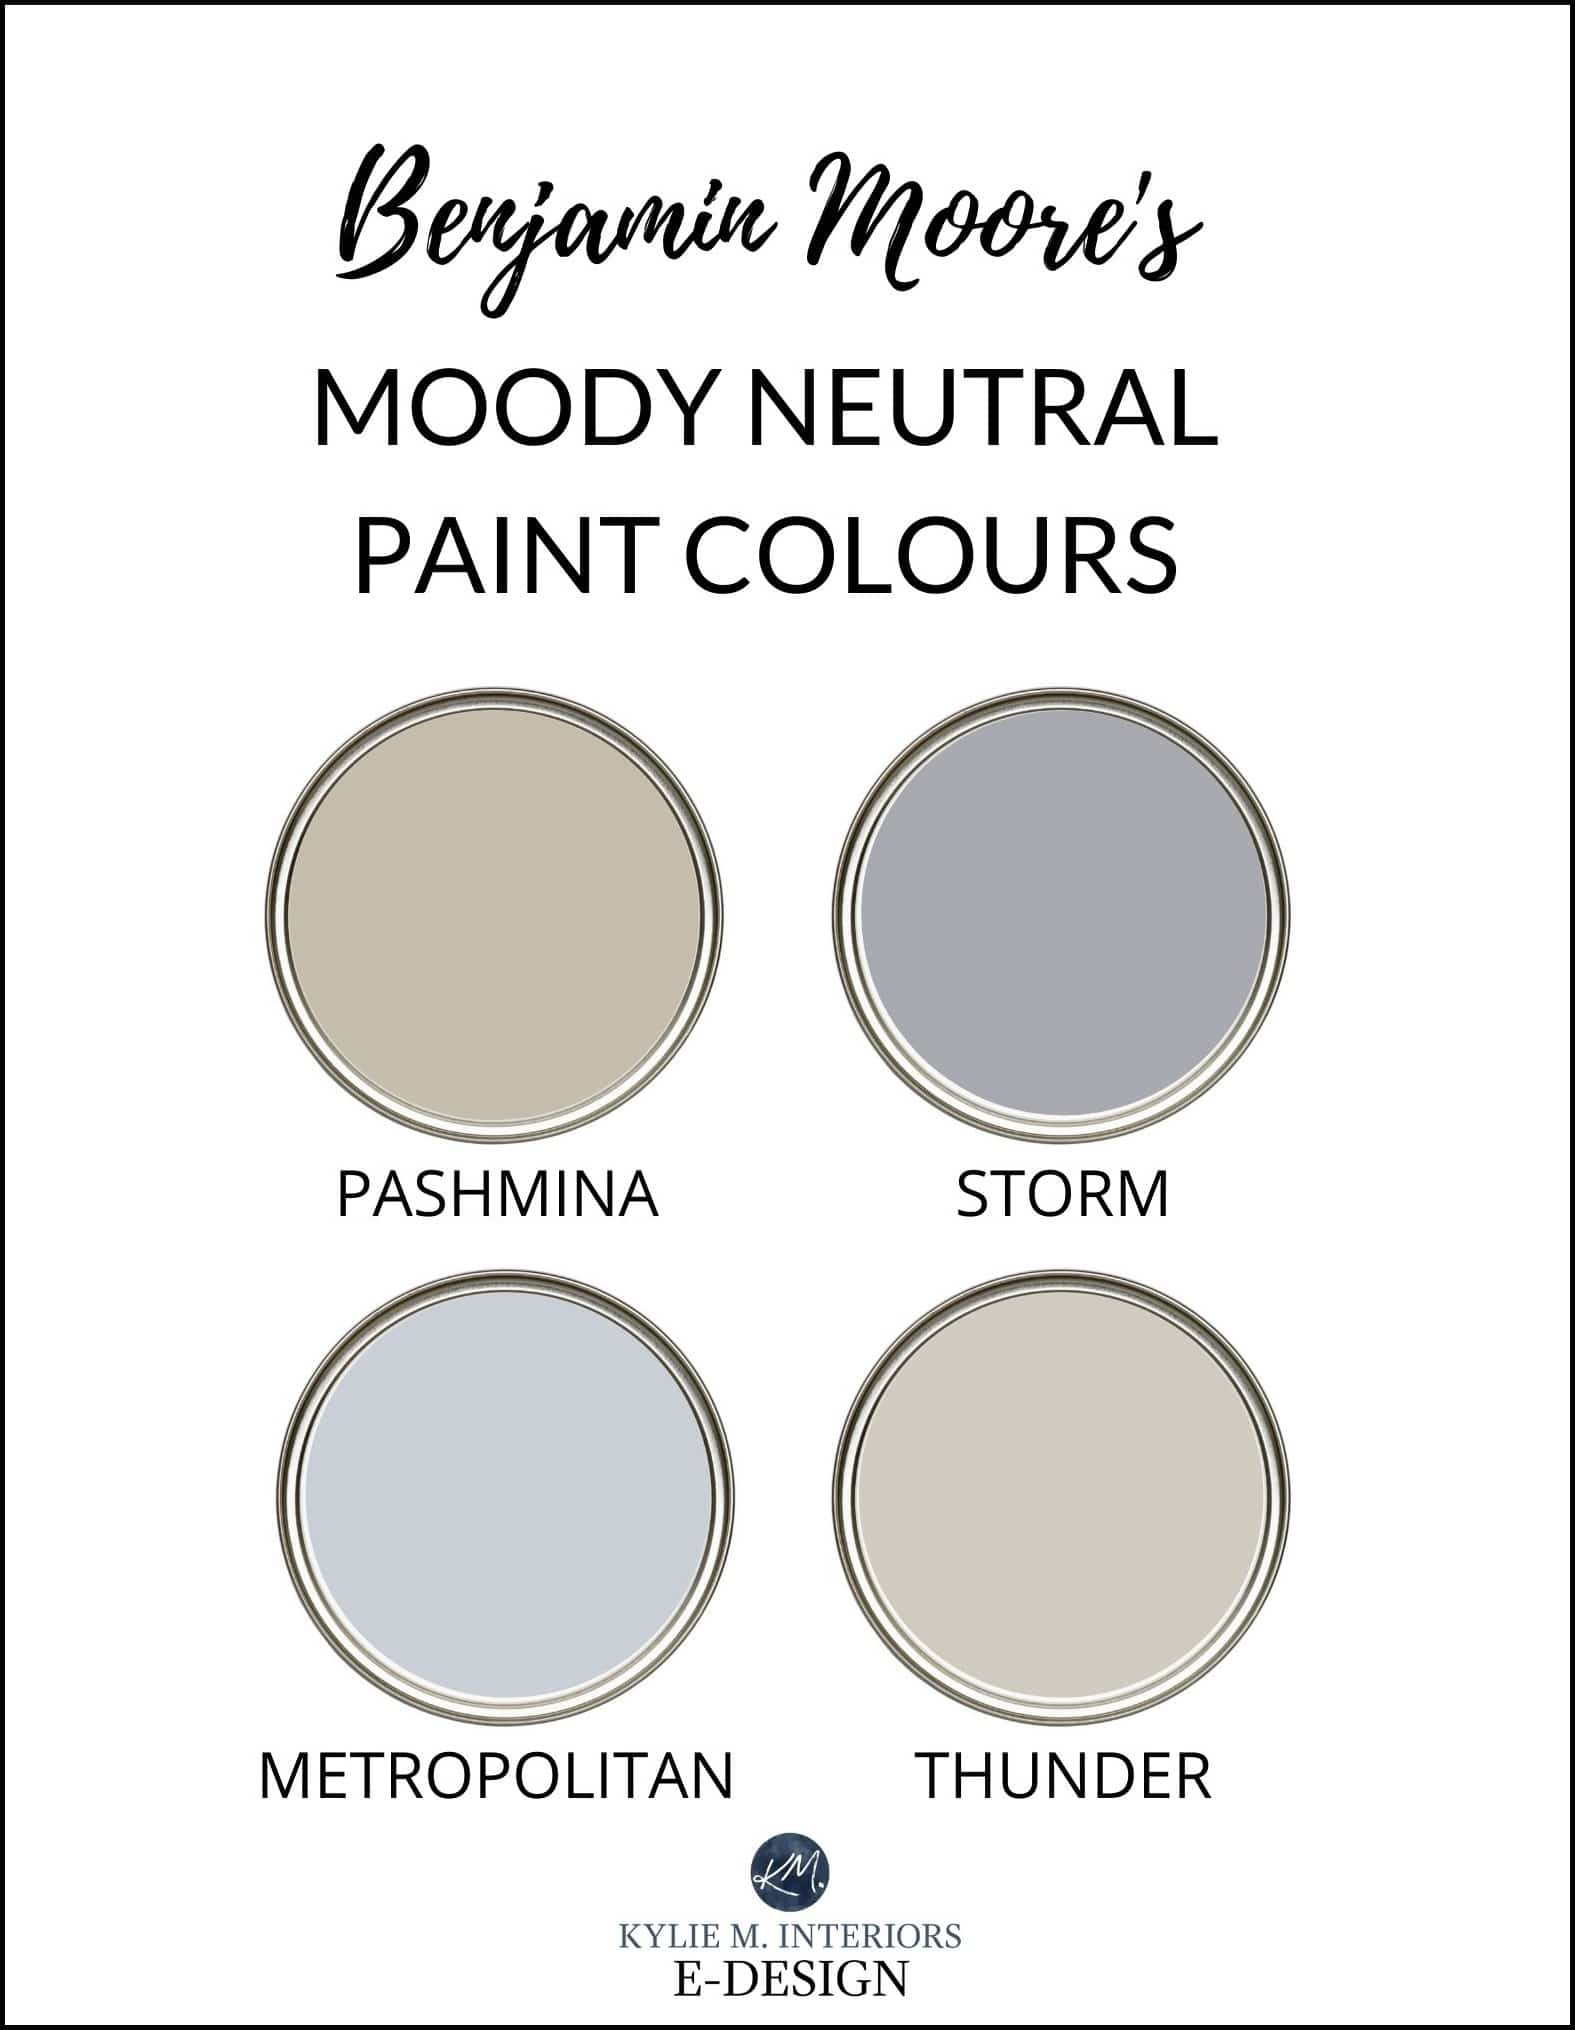 The Best Beige Greige Taupe Gray Paint Colours Benjamin Moore Affinity Kylie M Interiors